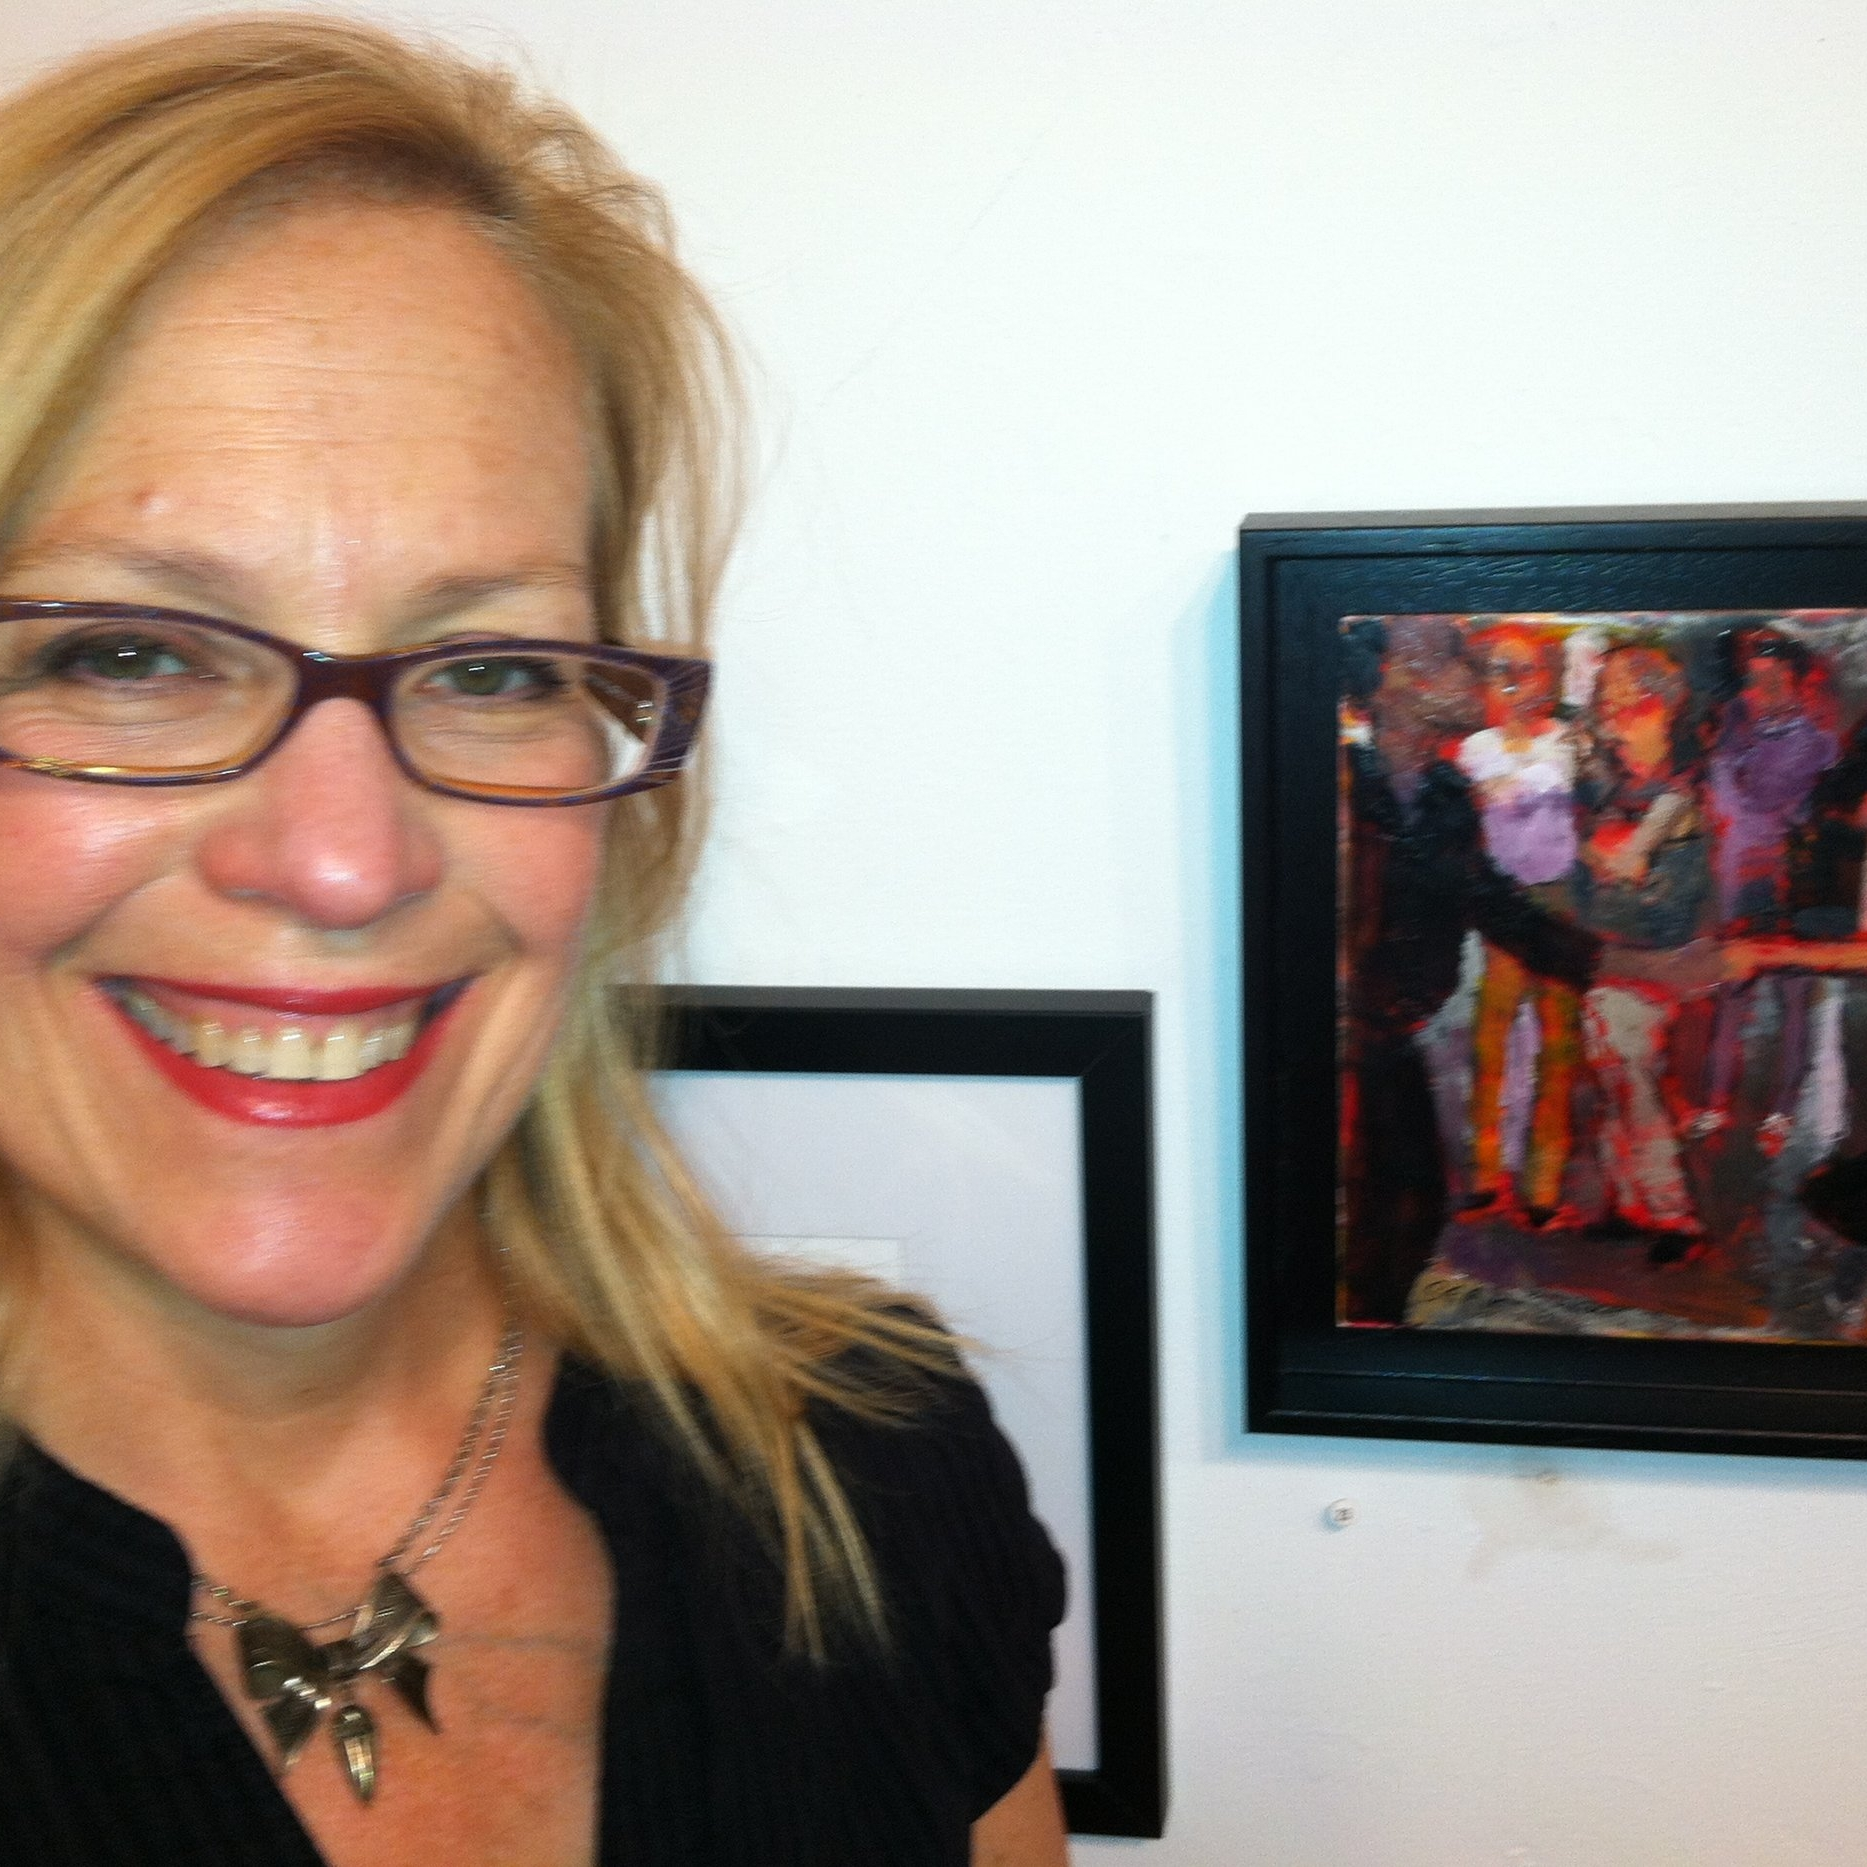 The artist with her encaustic showing at the Pierro Gallery.